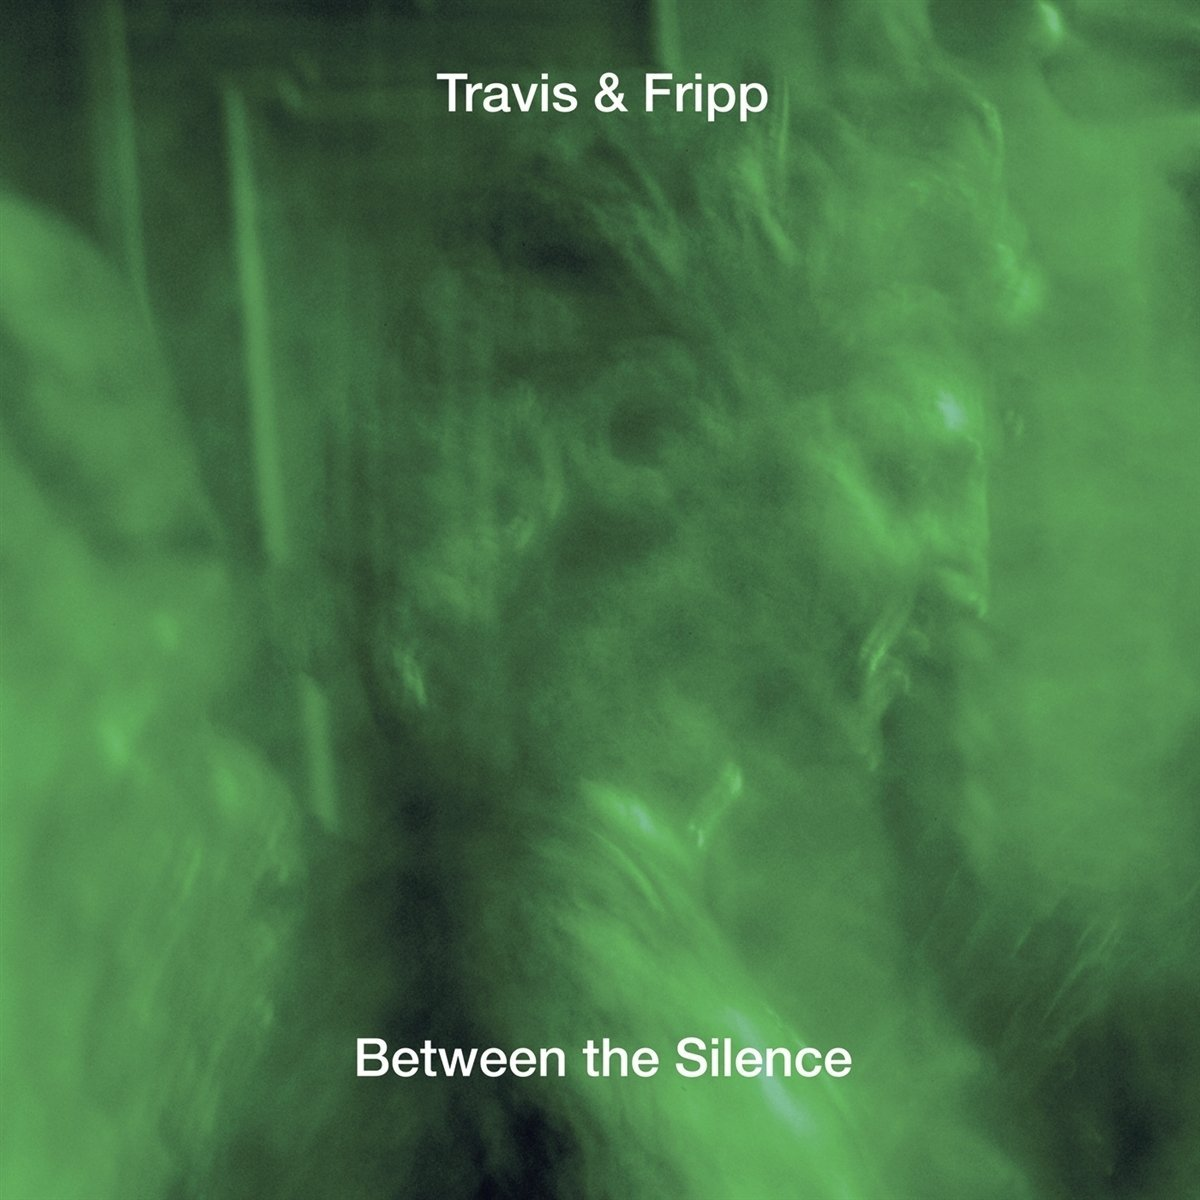 separation shoes 3546d 5a4d4 Theo Travis, Robert Fripp  Between The Silence (3 CD)